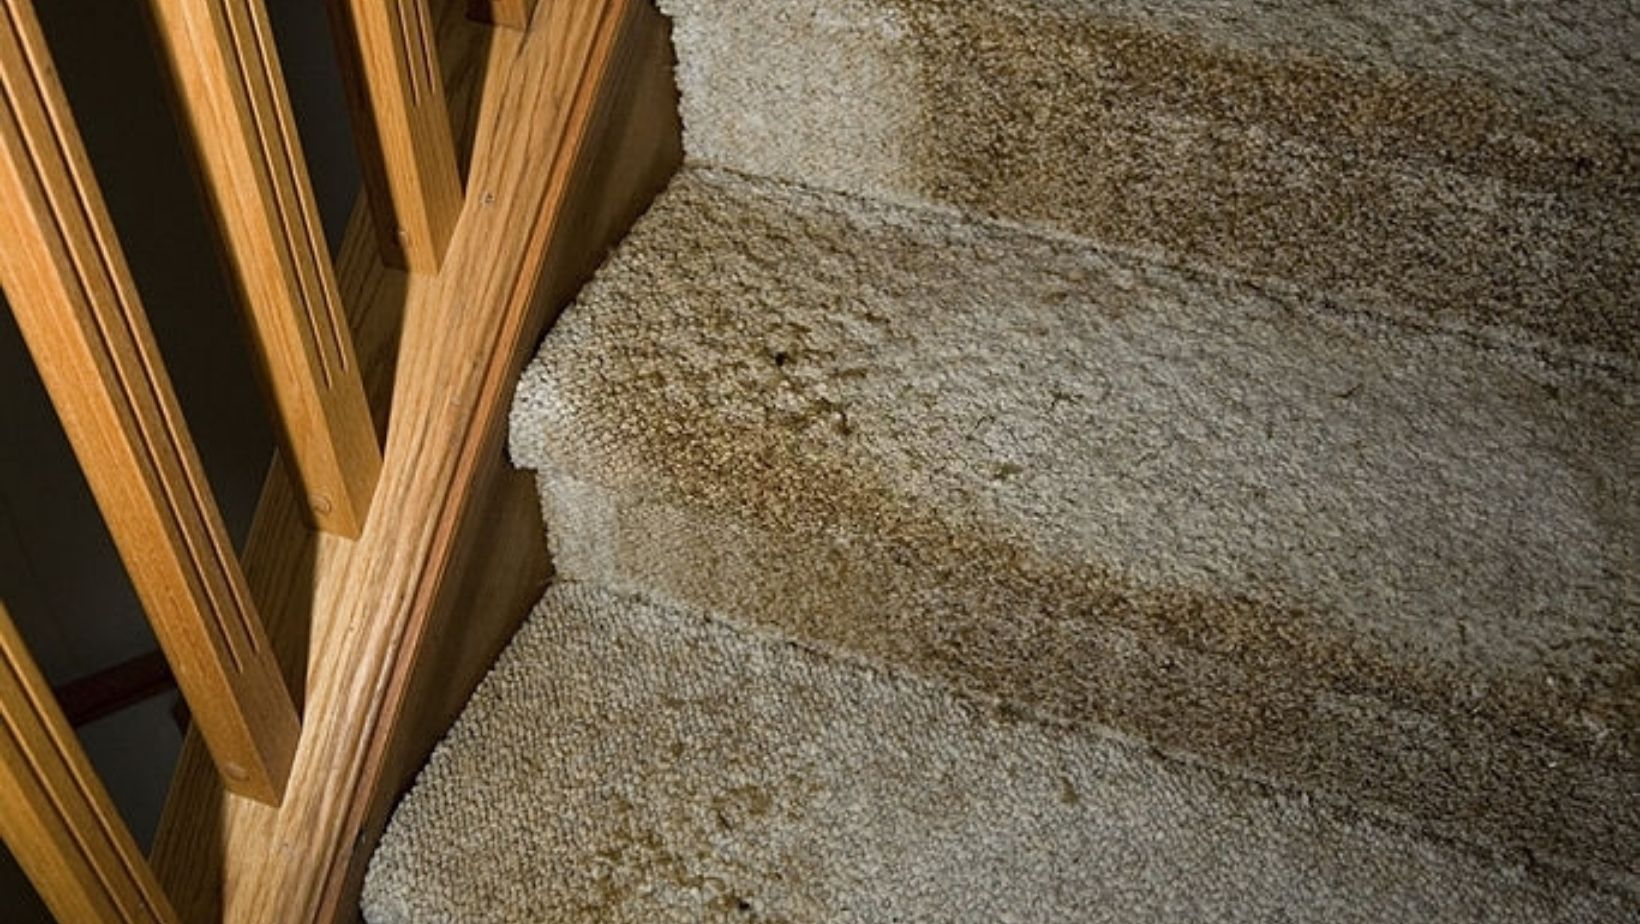 Water Damage Carpet Cleaning Services Homestead